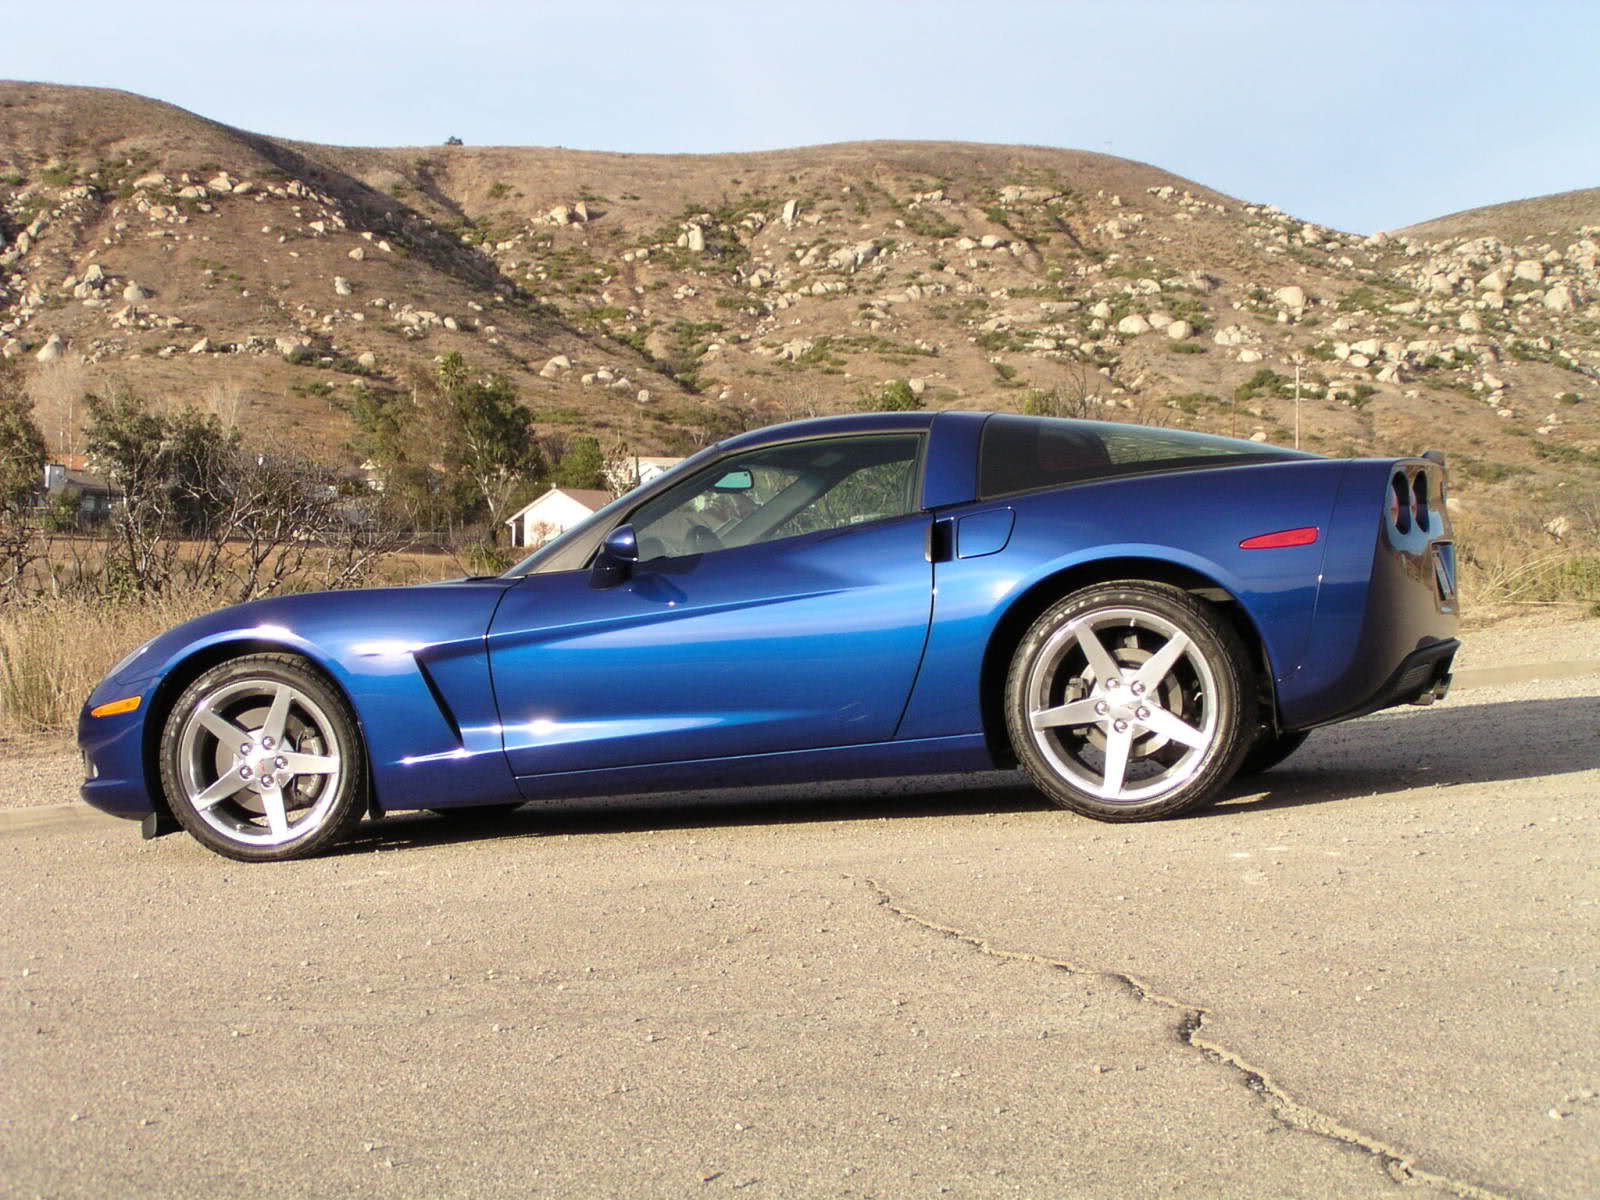 2005 Corvette Exterior Interior Colors Color Options Quanies